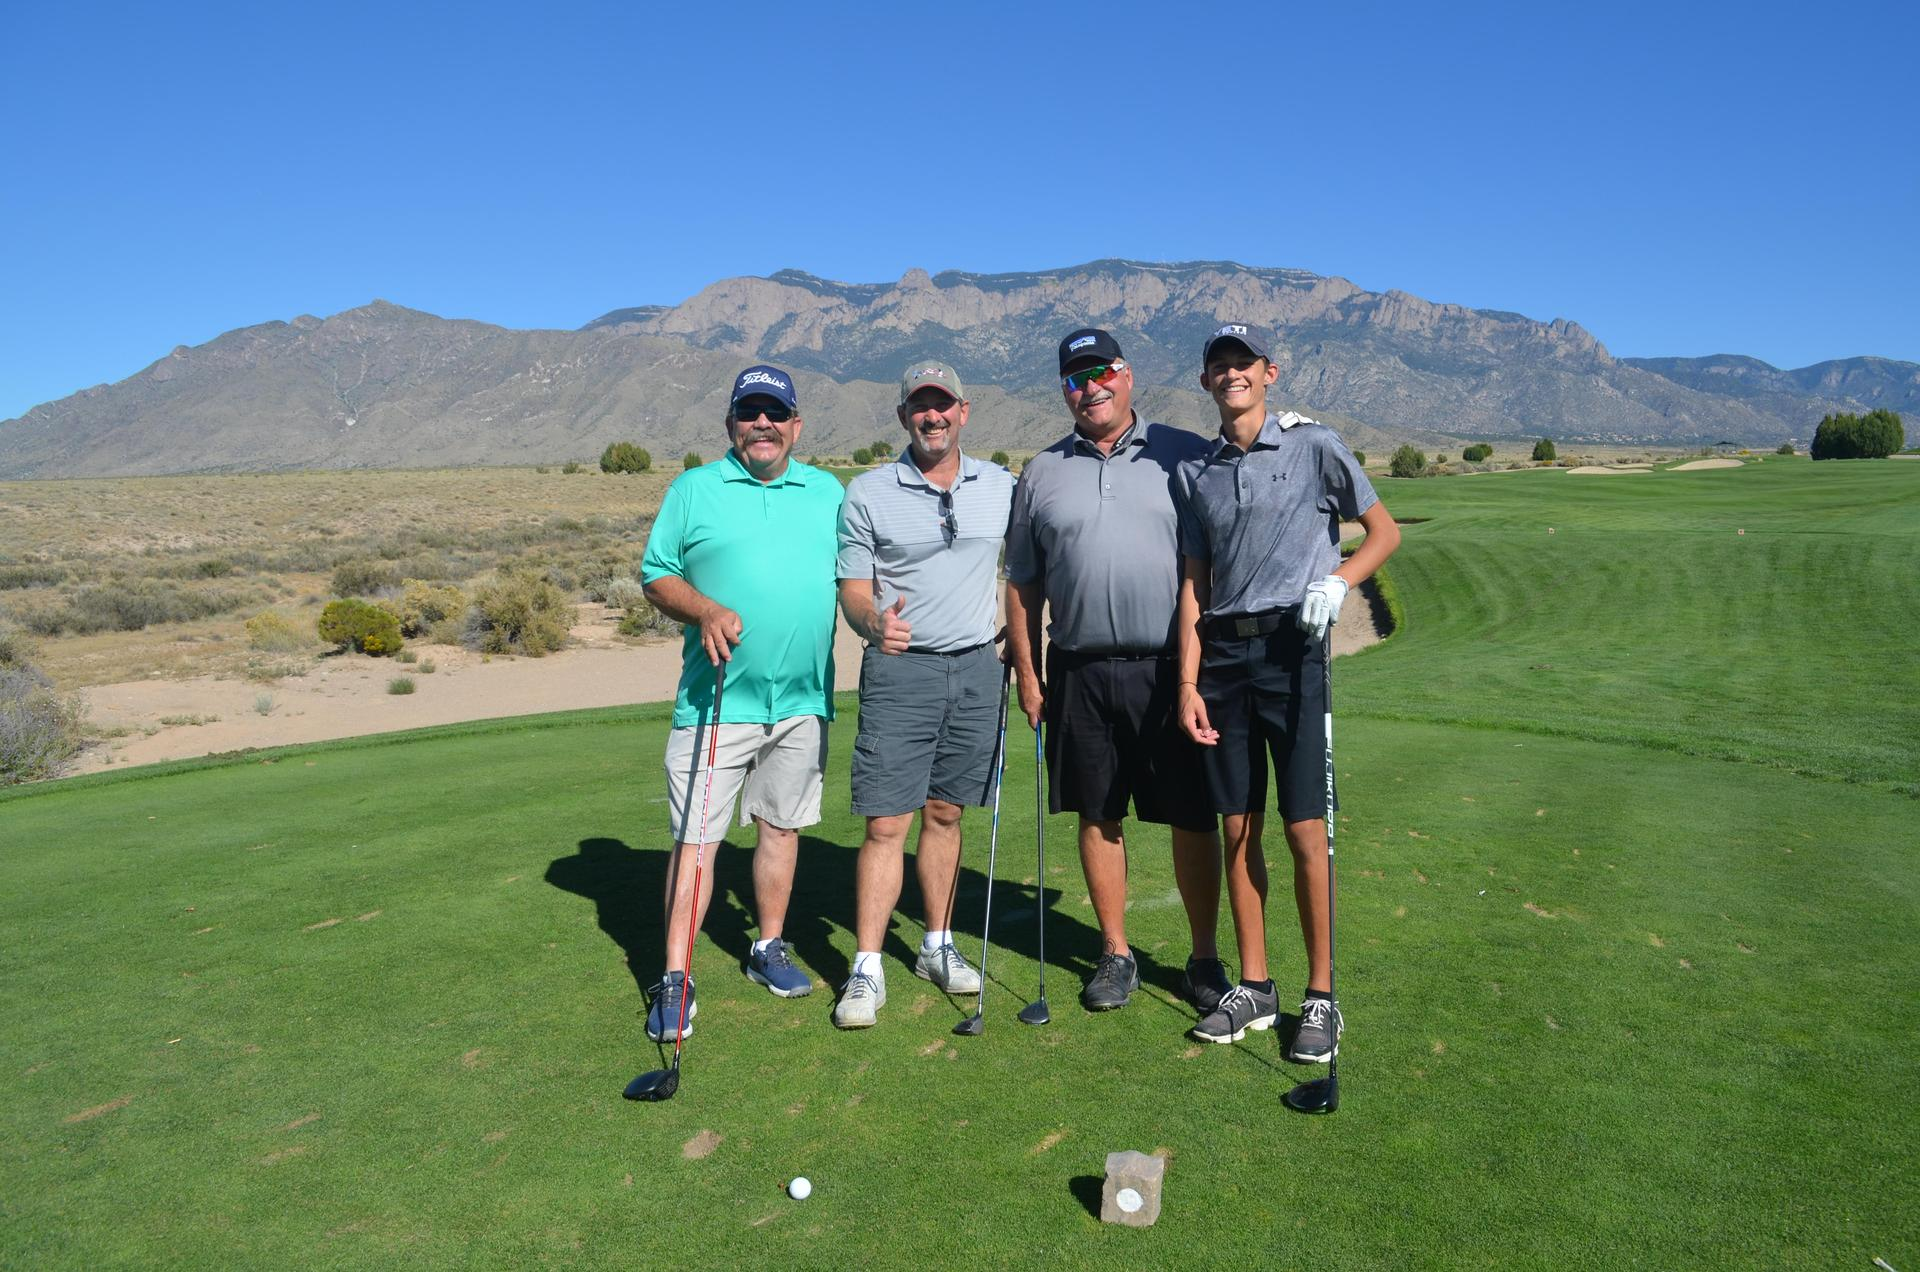 Golfers smile in front of Sandia Mountains on golf course